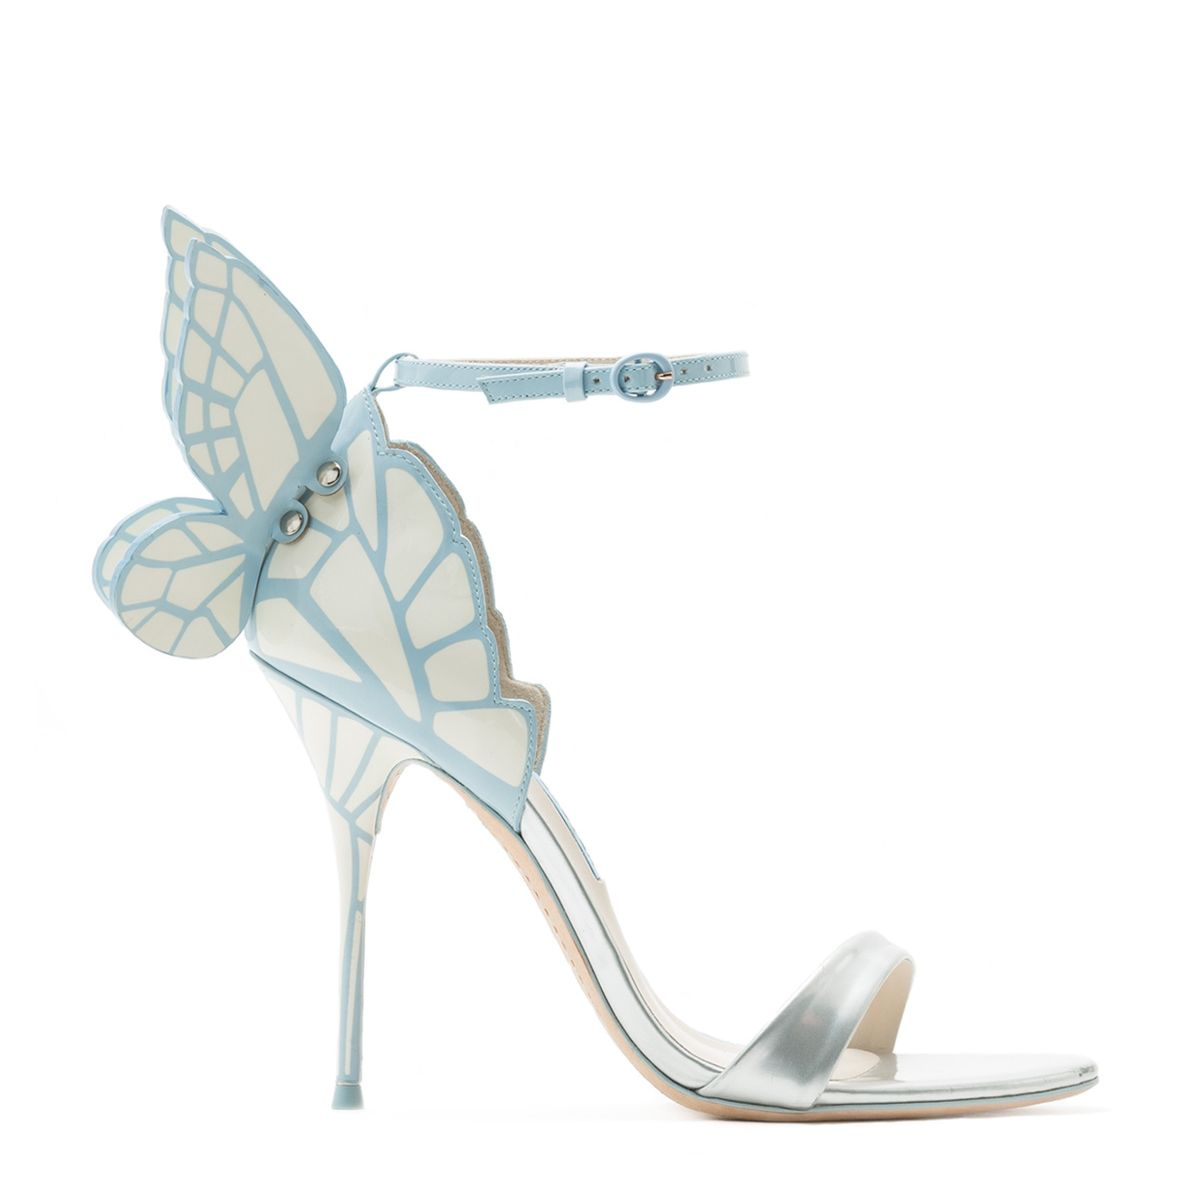 Chiara Ice bridal sandals - Metallic Sophia Webster qTLFN76w4C